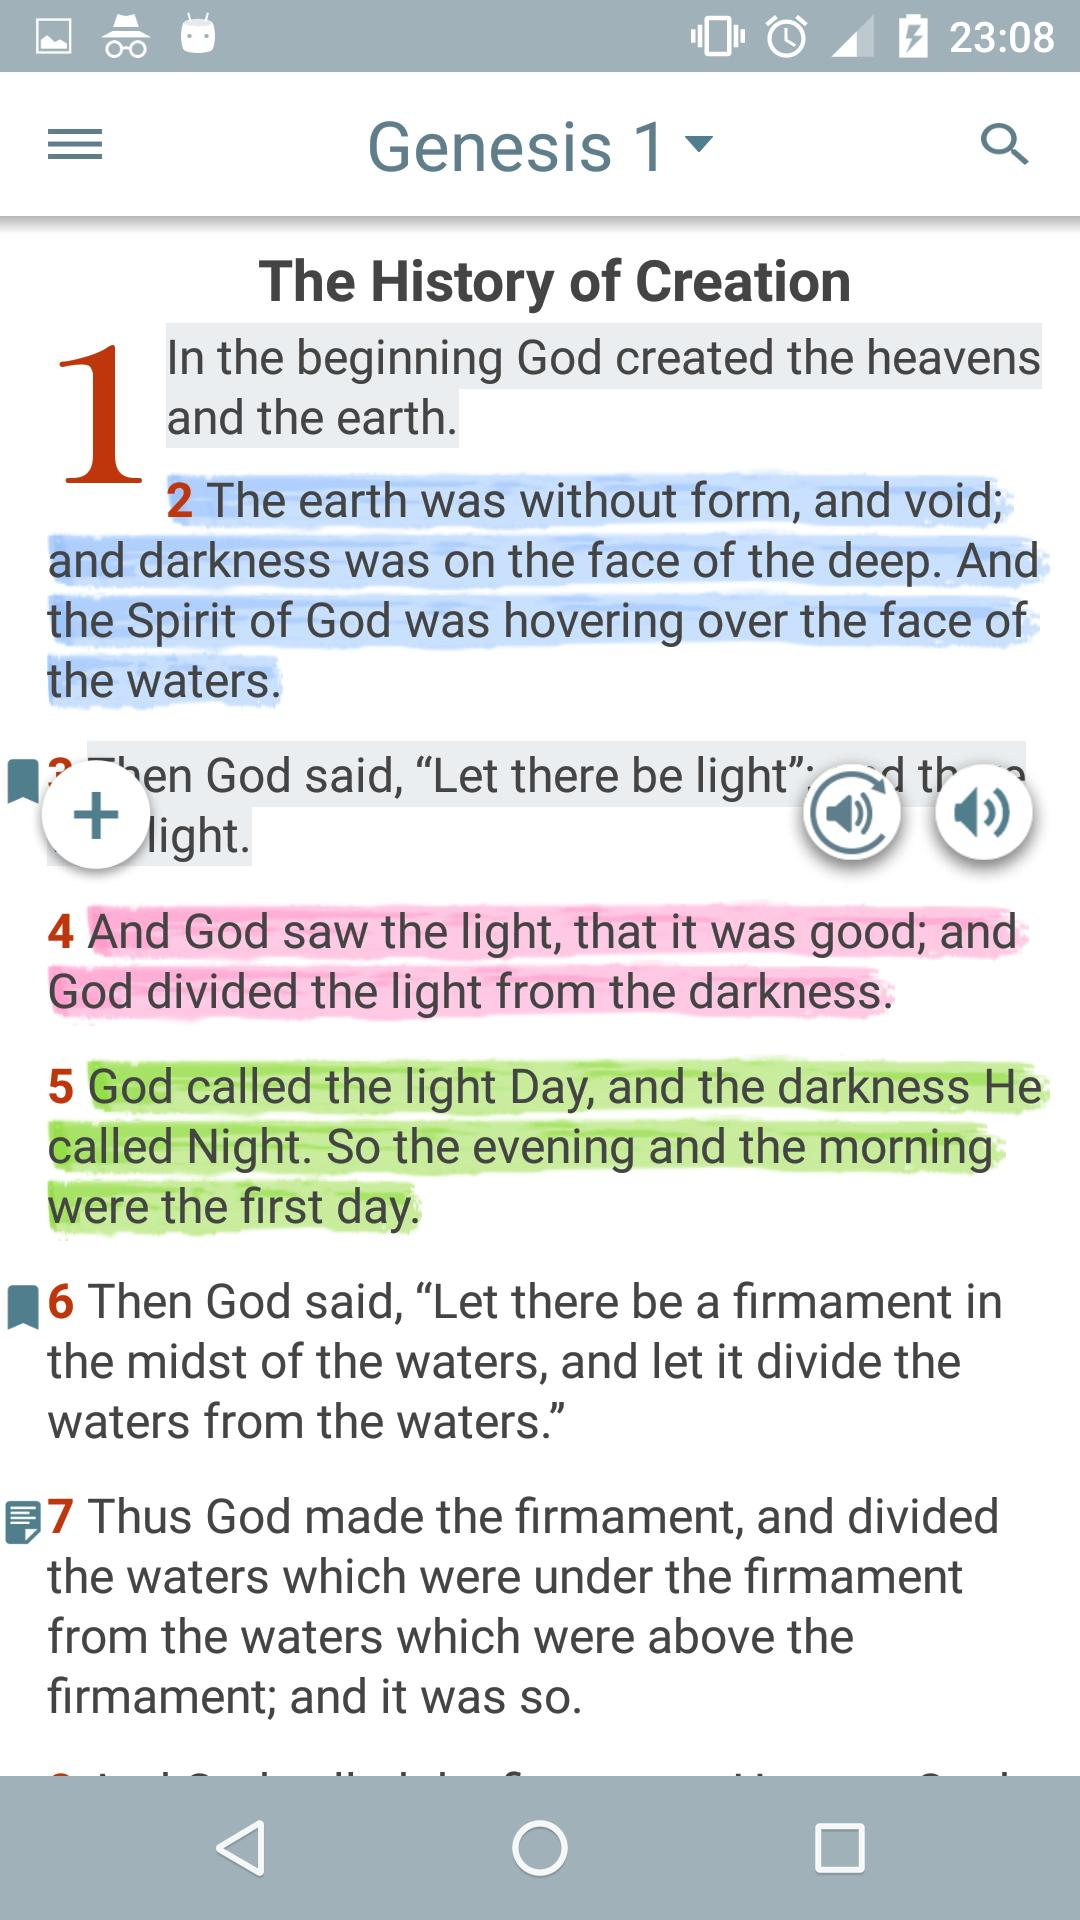 Bible New King James Version for Android - APK Download